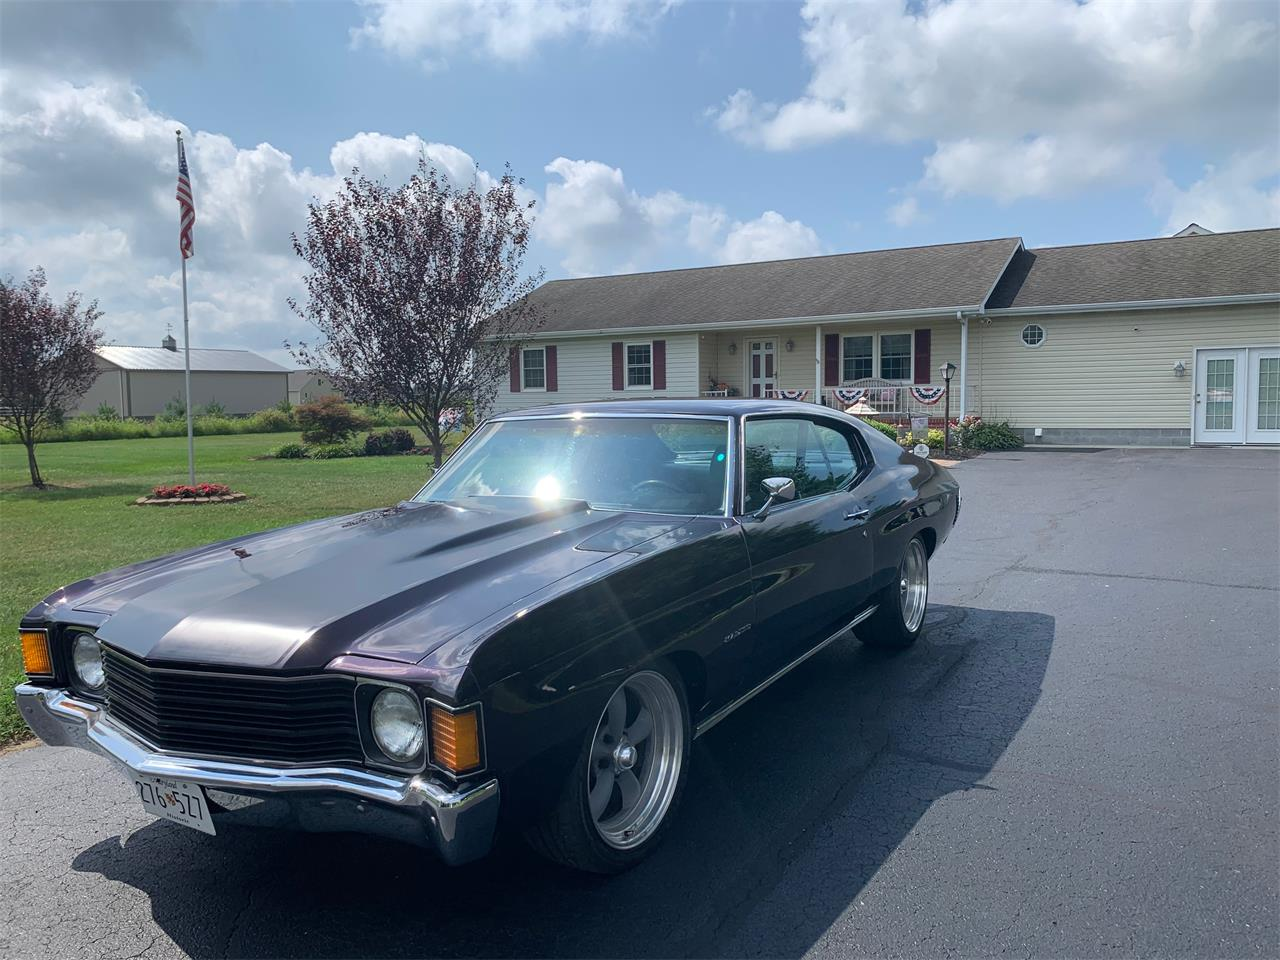 Large Picture of 1972 Chevrolet Chevelle Malibu Offered by a Private Seller - QK1N